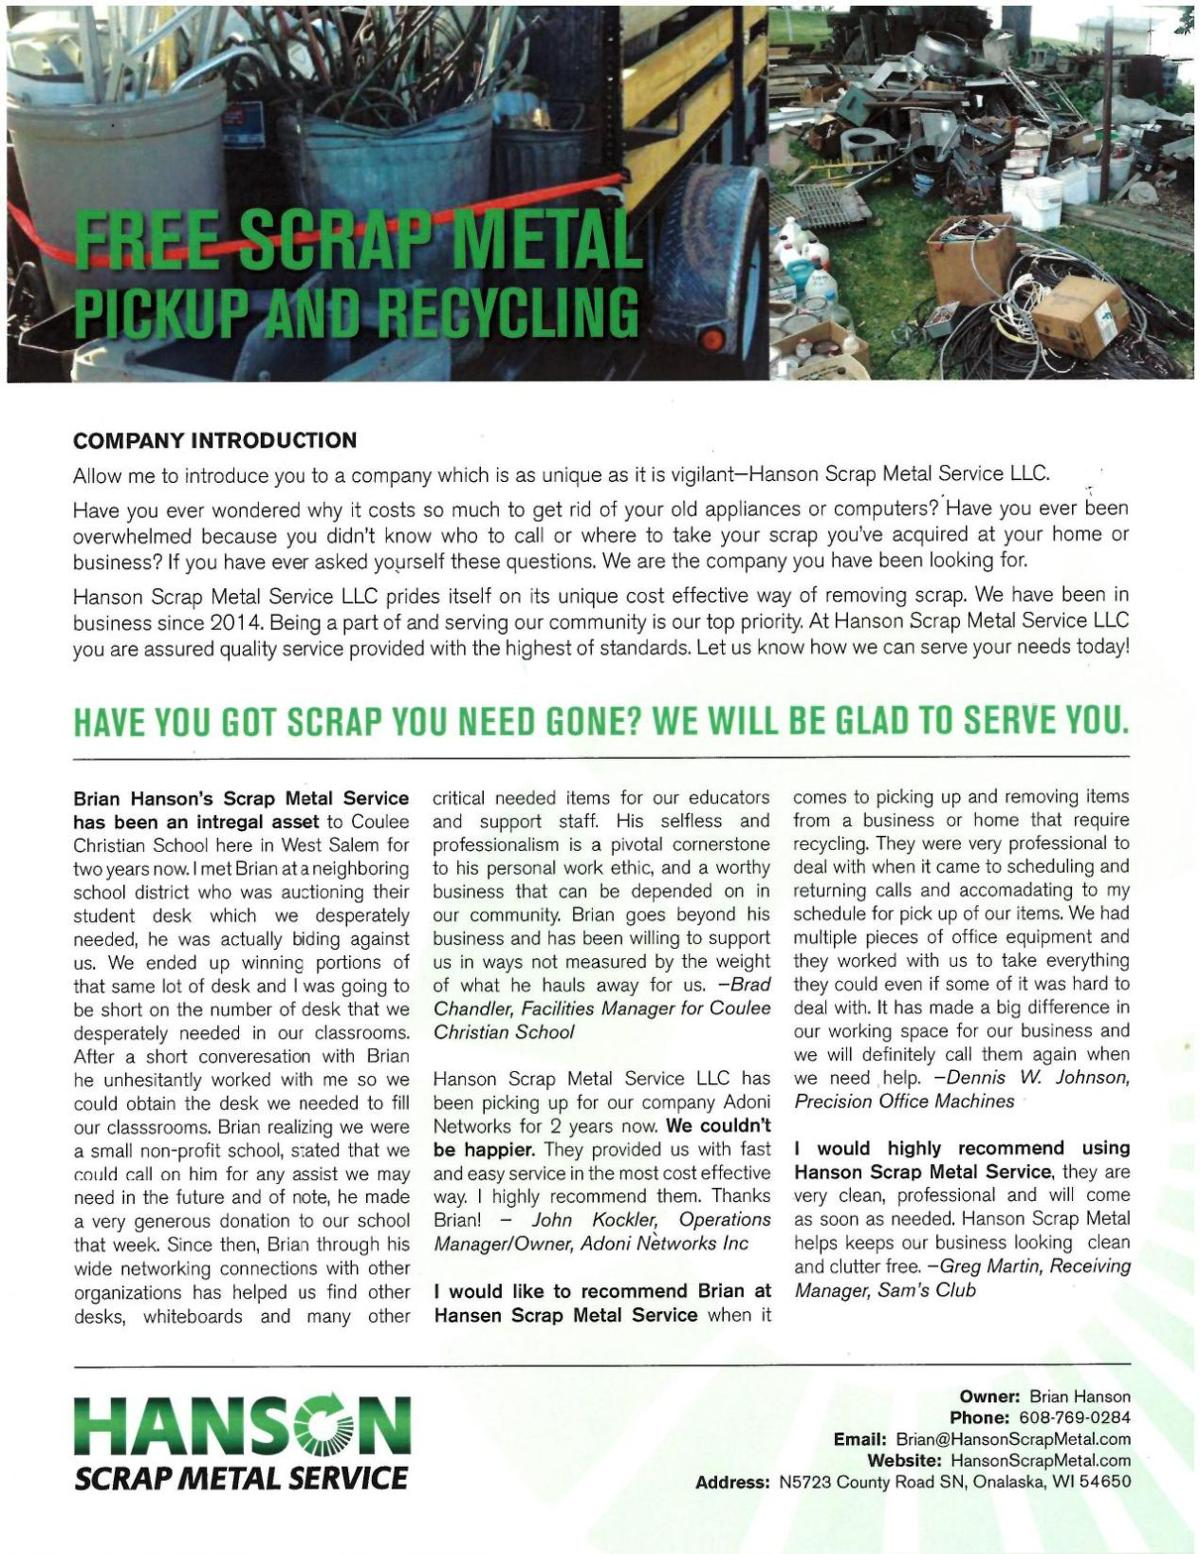 Free Scrap Metal Pick-up & Recycling